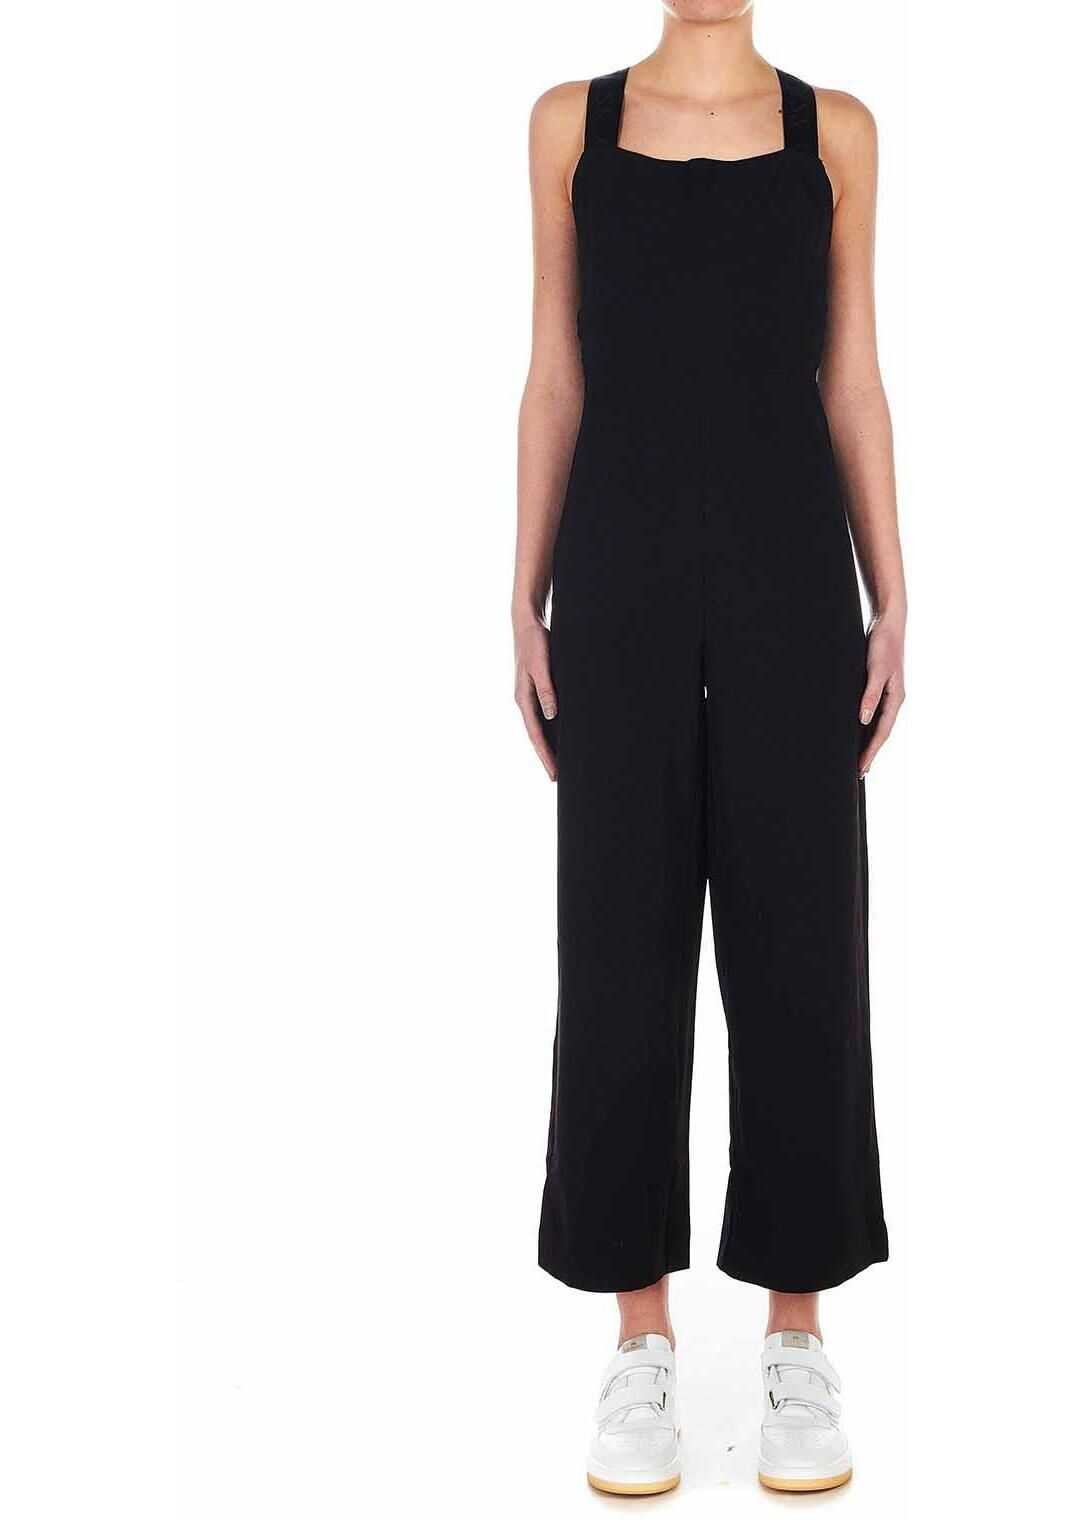 GUESS Overall Black